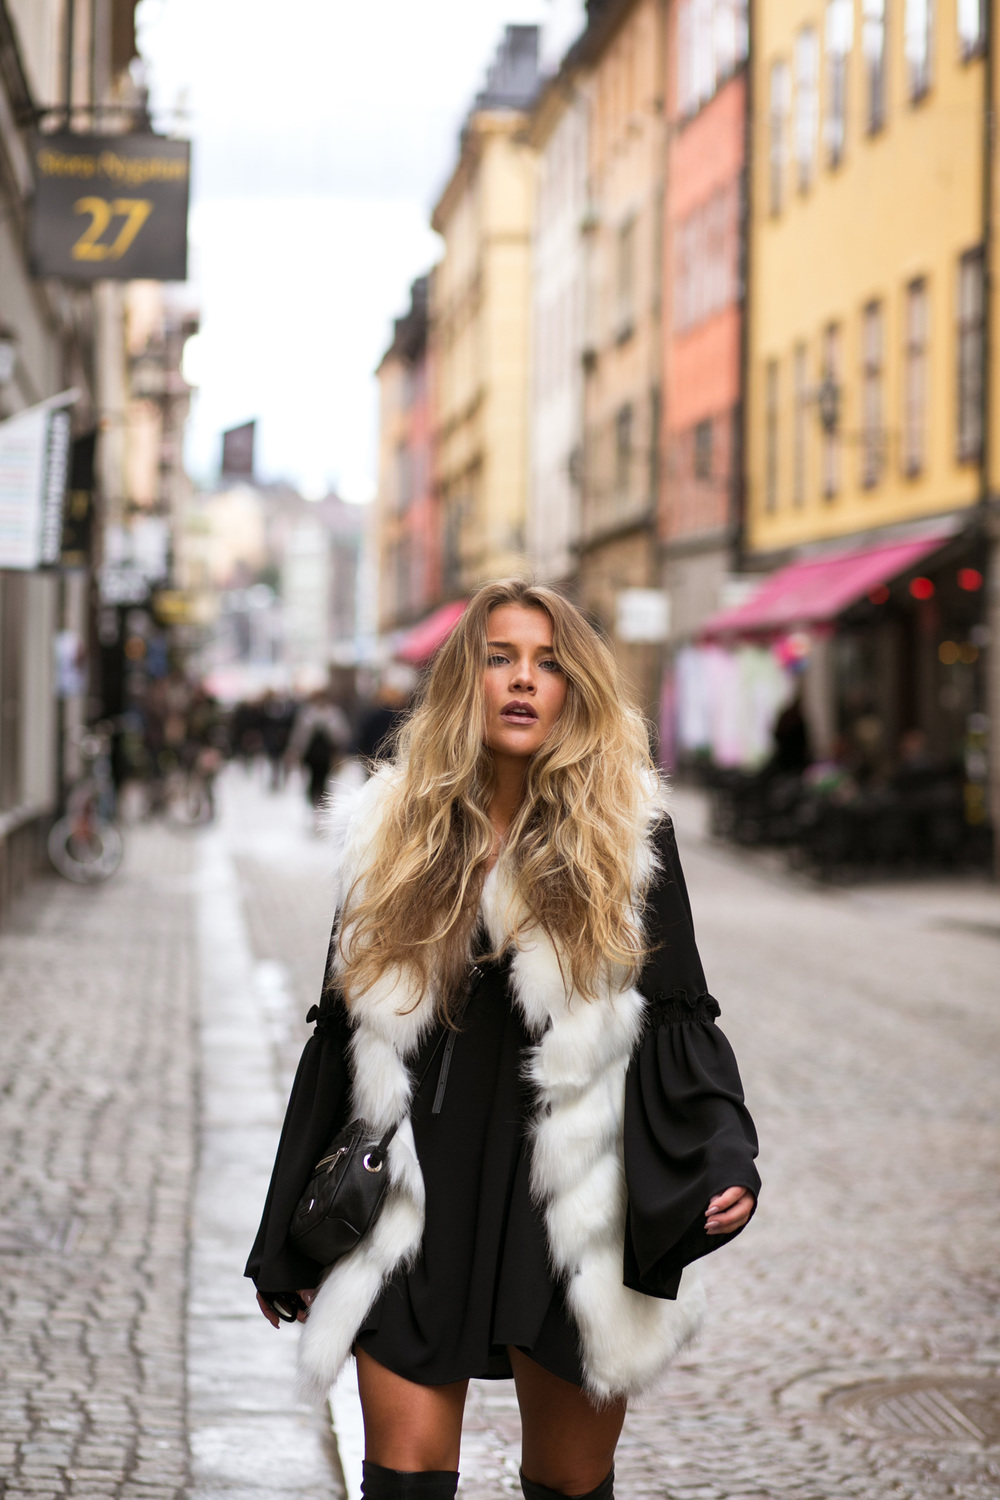 004-stockholm-blogger-fashion.jpg